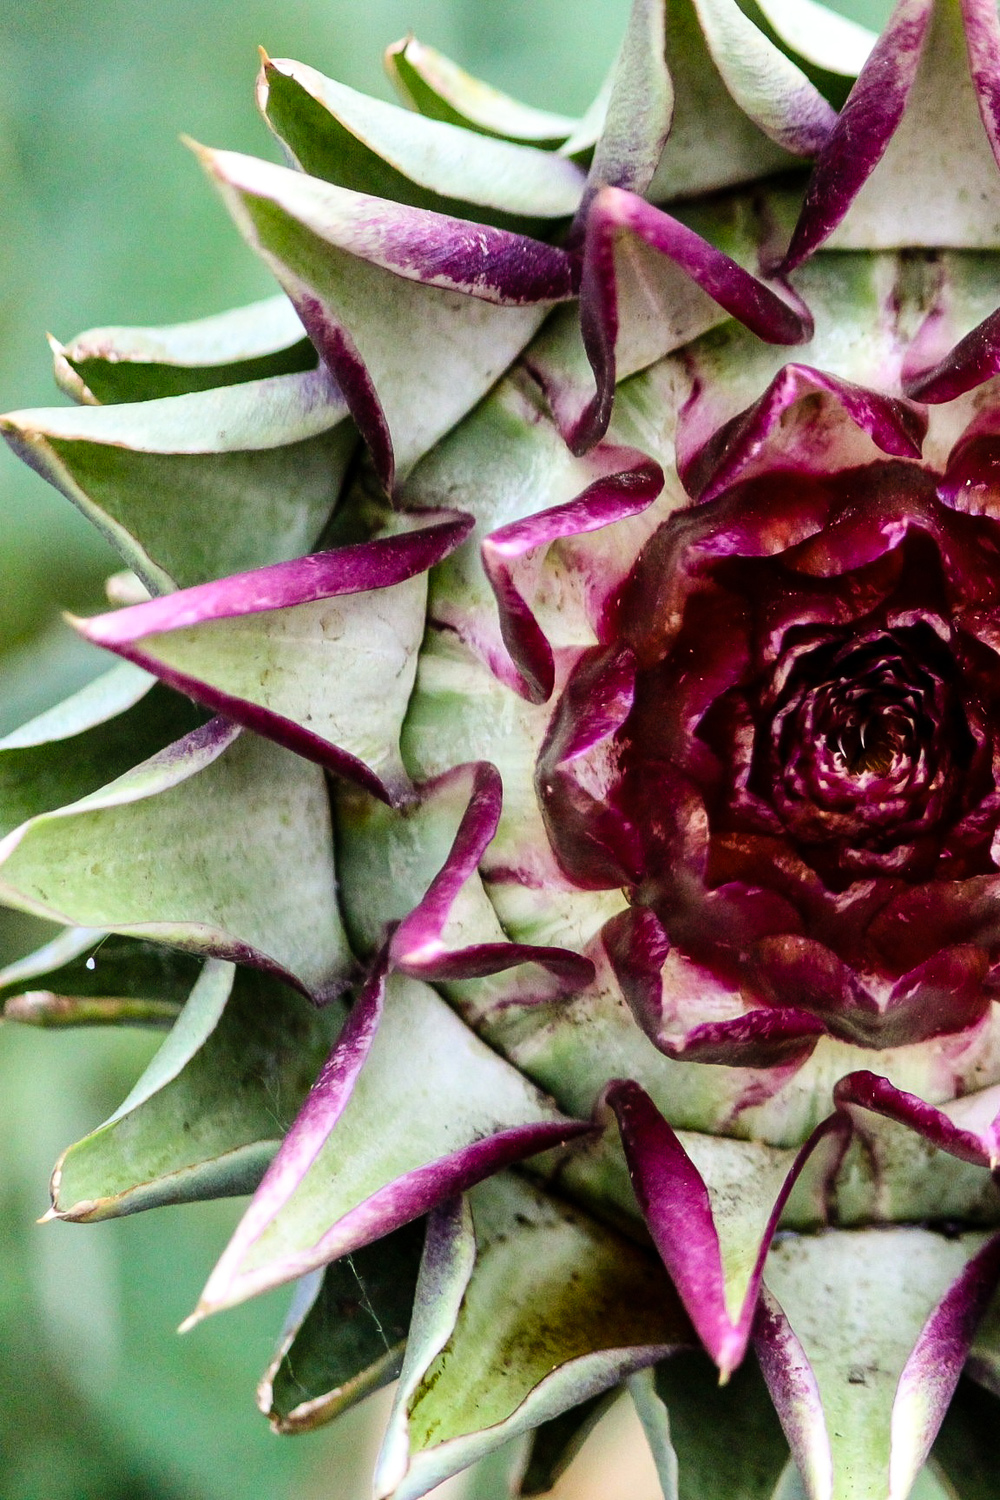 Violetto artichoke bloom